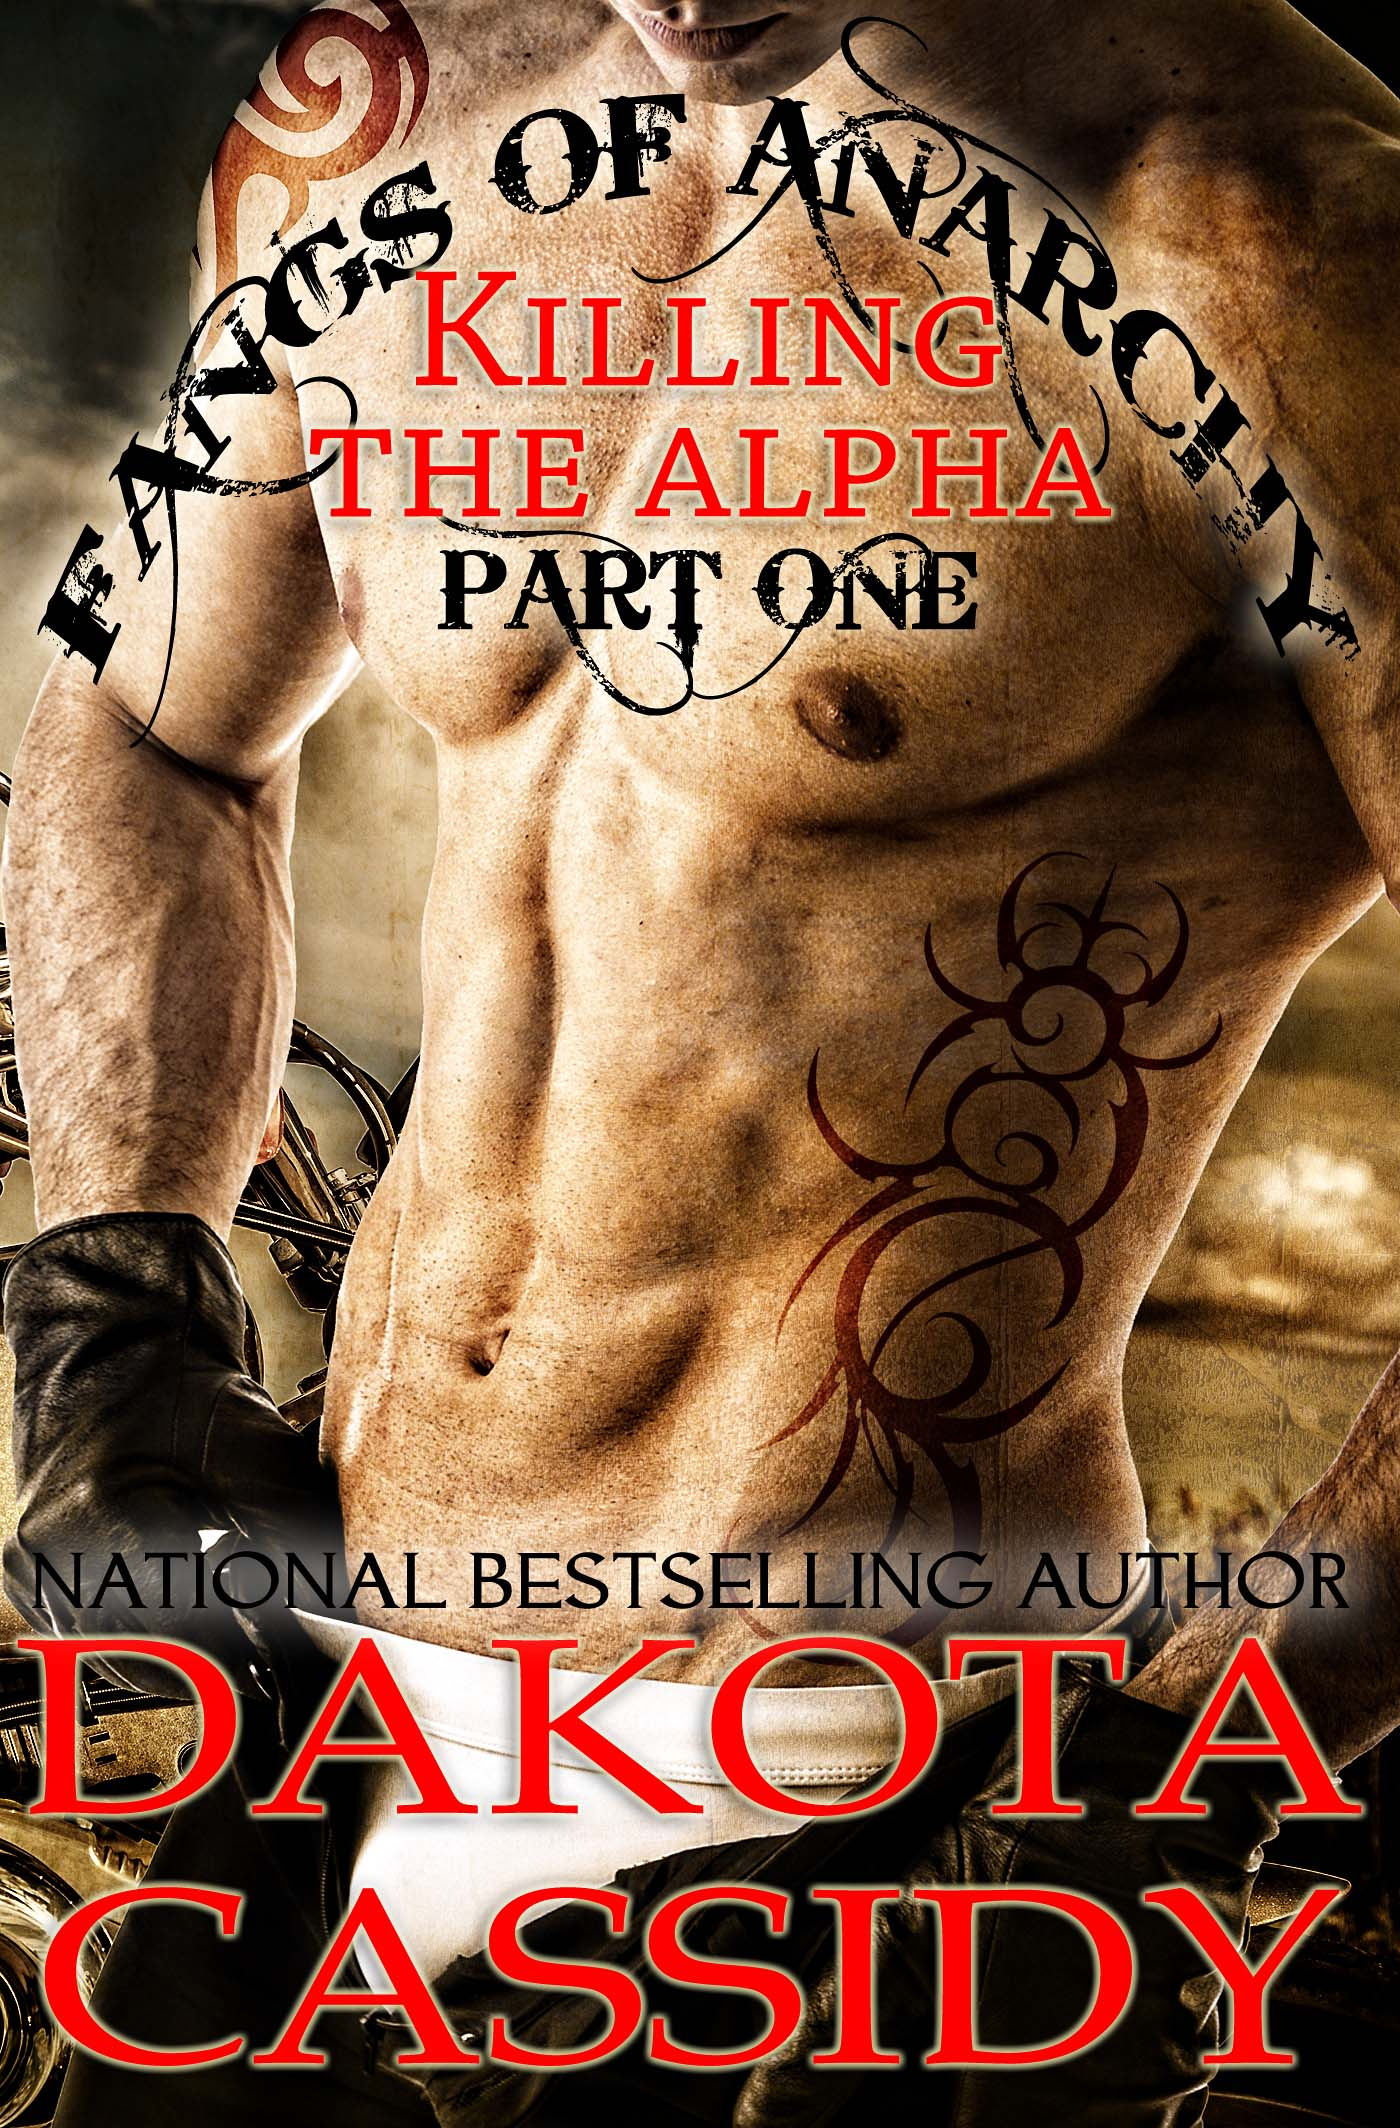 Dakota Cassidy - Fangs of Anarchy - Killing The Alpha (Part 1)